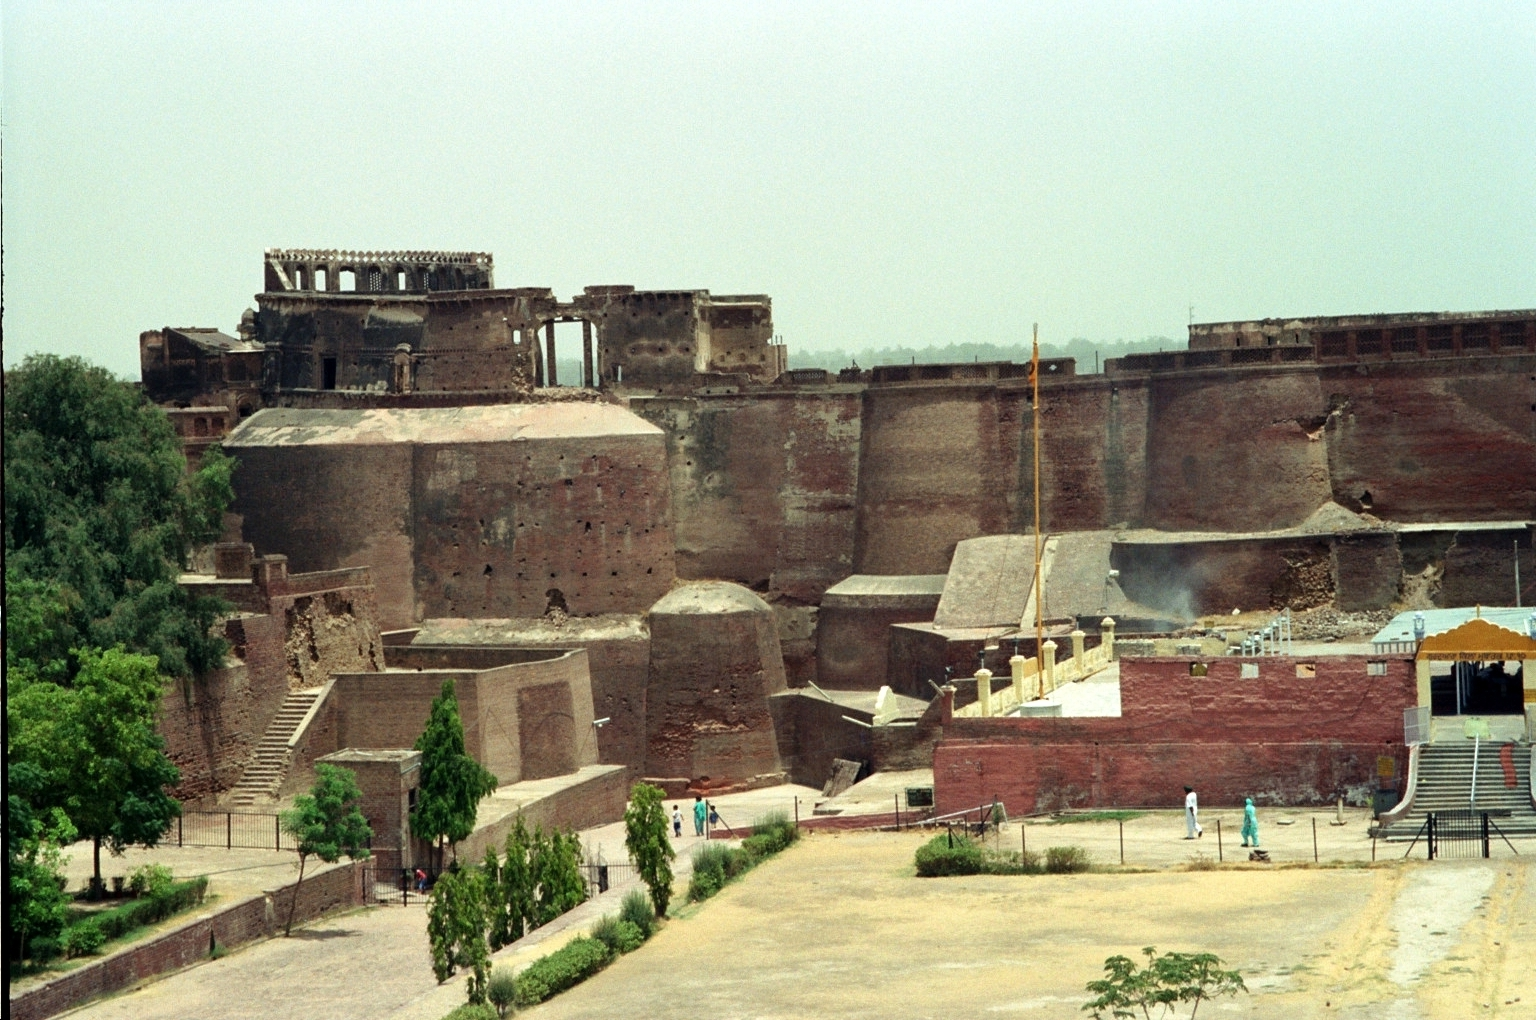 http://upload.wikimedia.org/wikipedia/commons/6/6d/Qila_Mubarak_in_Bathinda.jpg